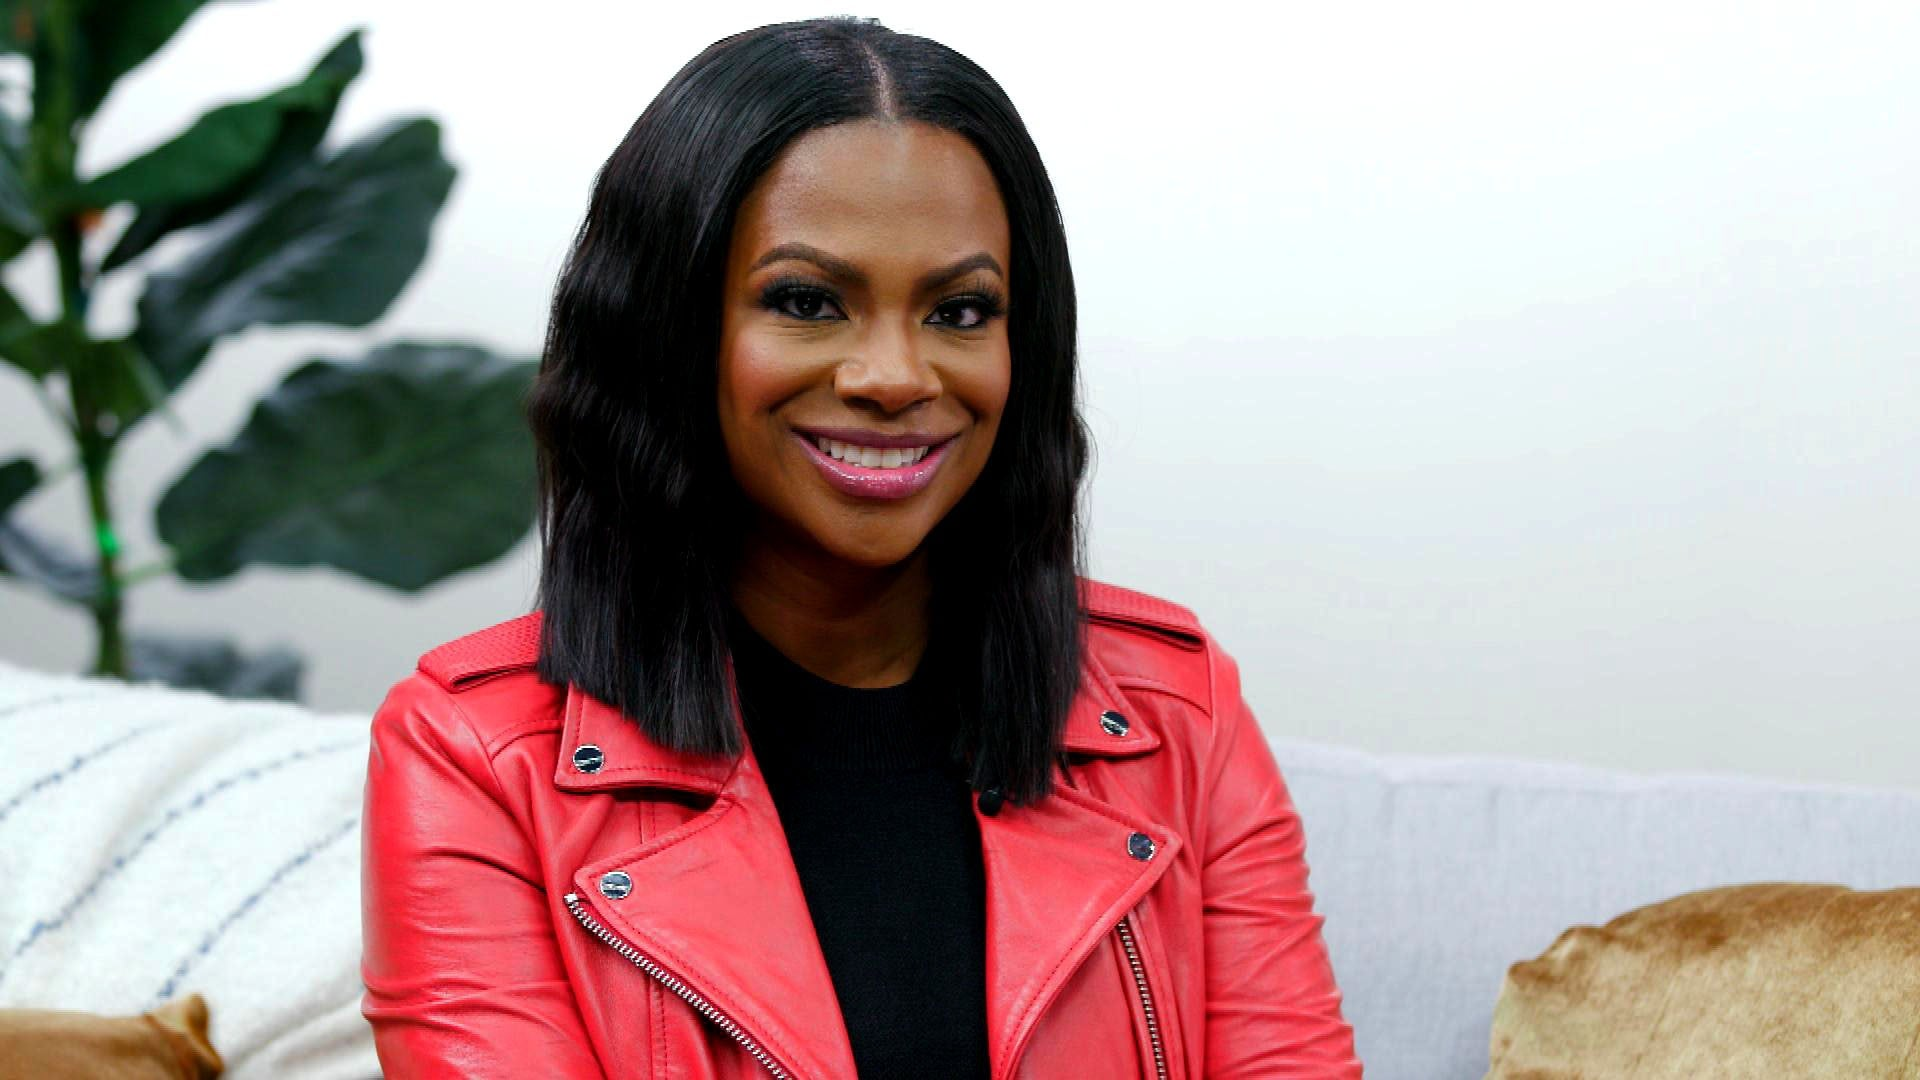 Kandi Burruss Addresses The Relationship With Her Surrogate: 'I Gained A New Friend'